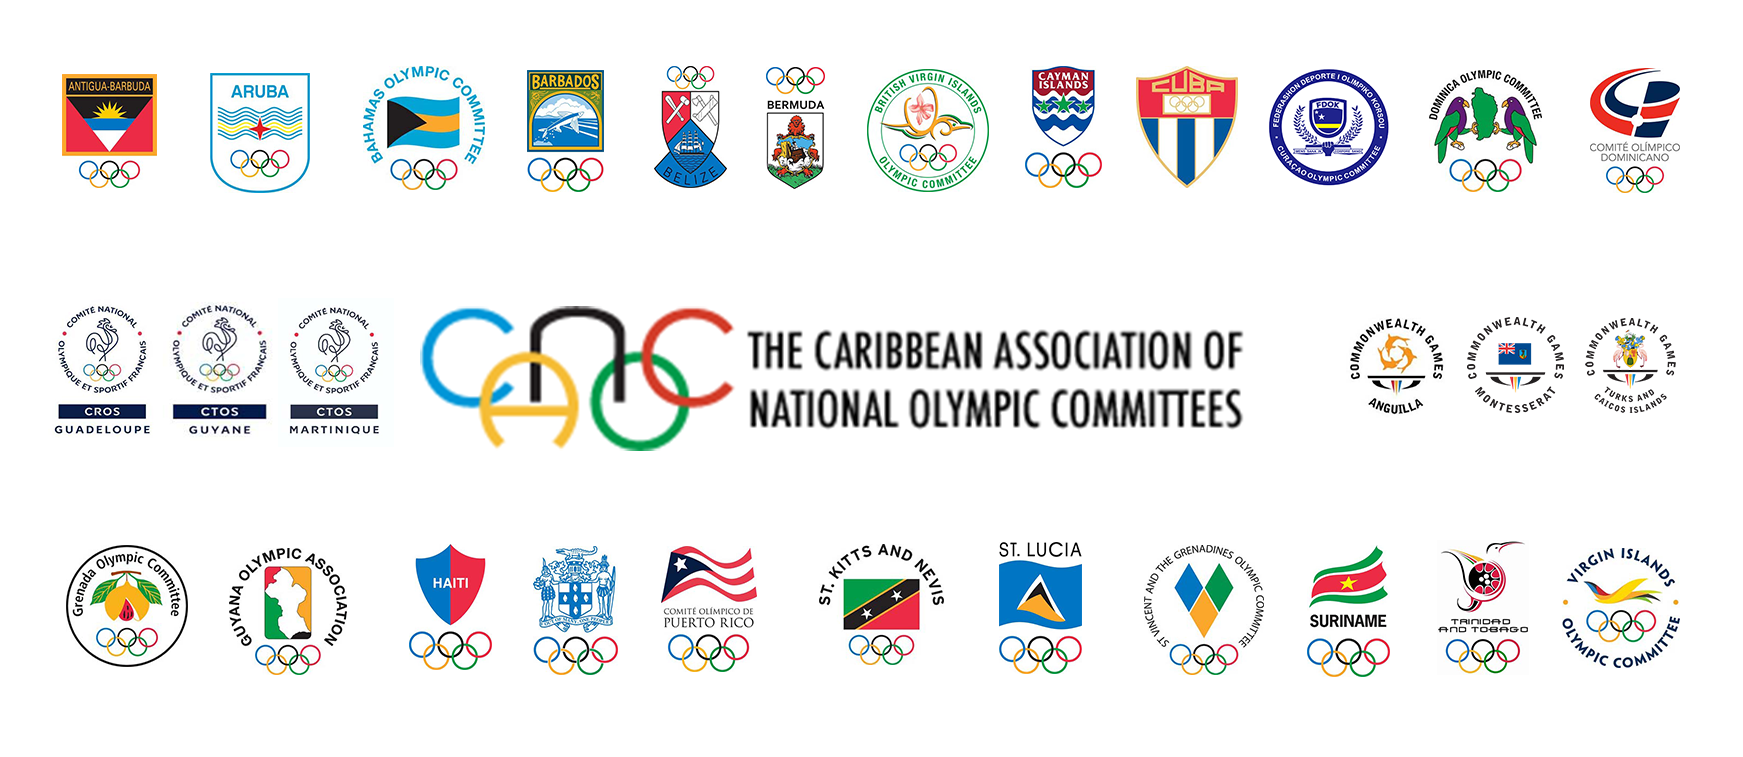 The Caribbean Association of National Olympic Committees